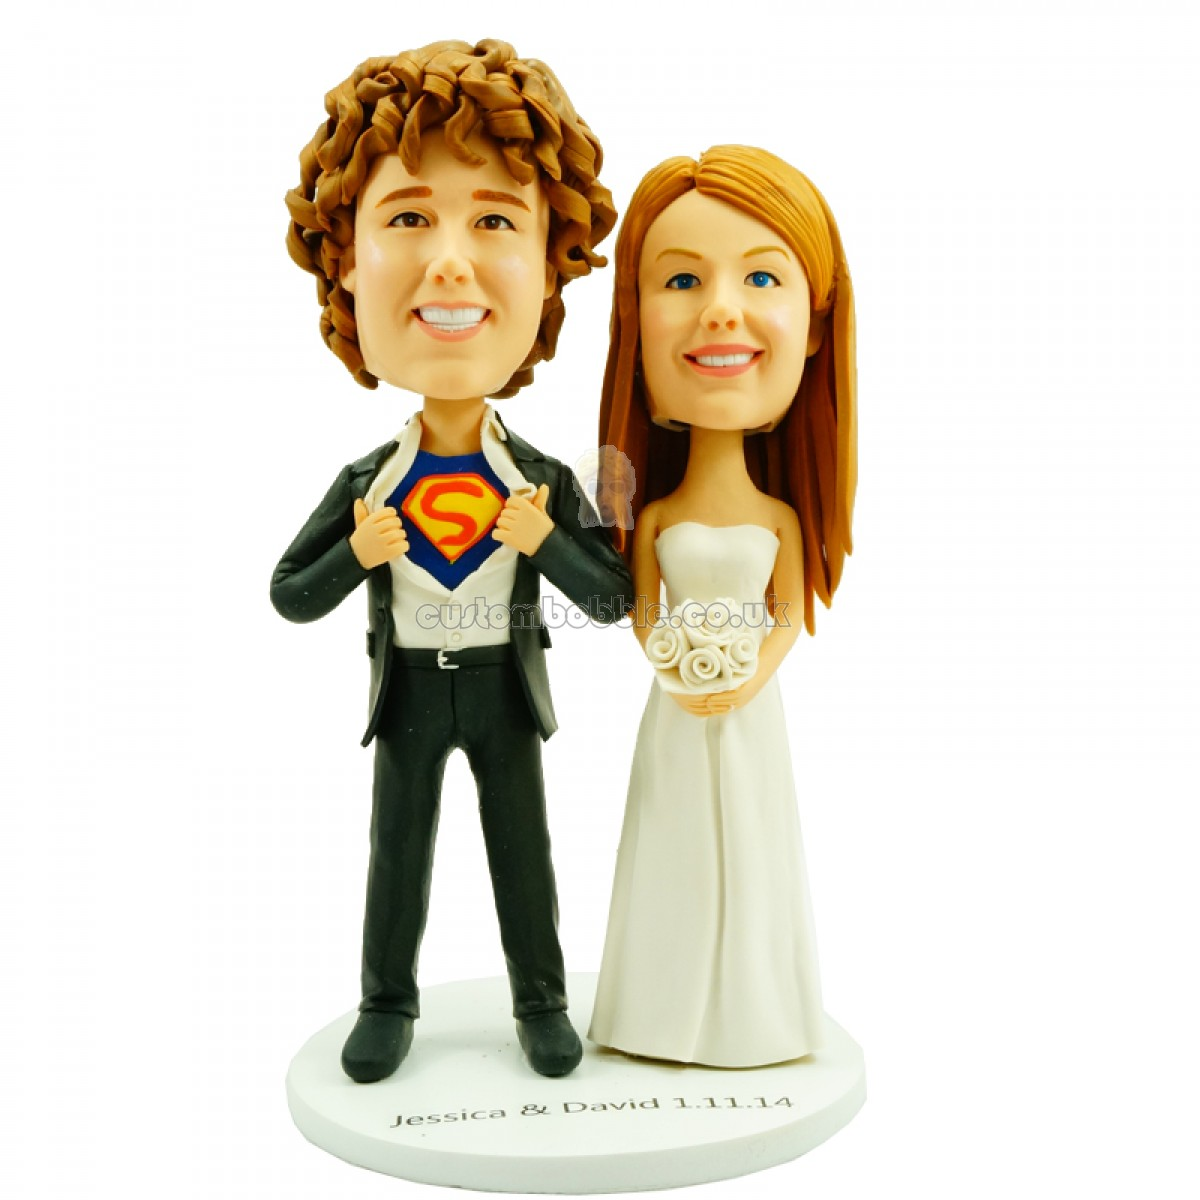 Bobblehead Wedding Cake Toppers